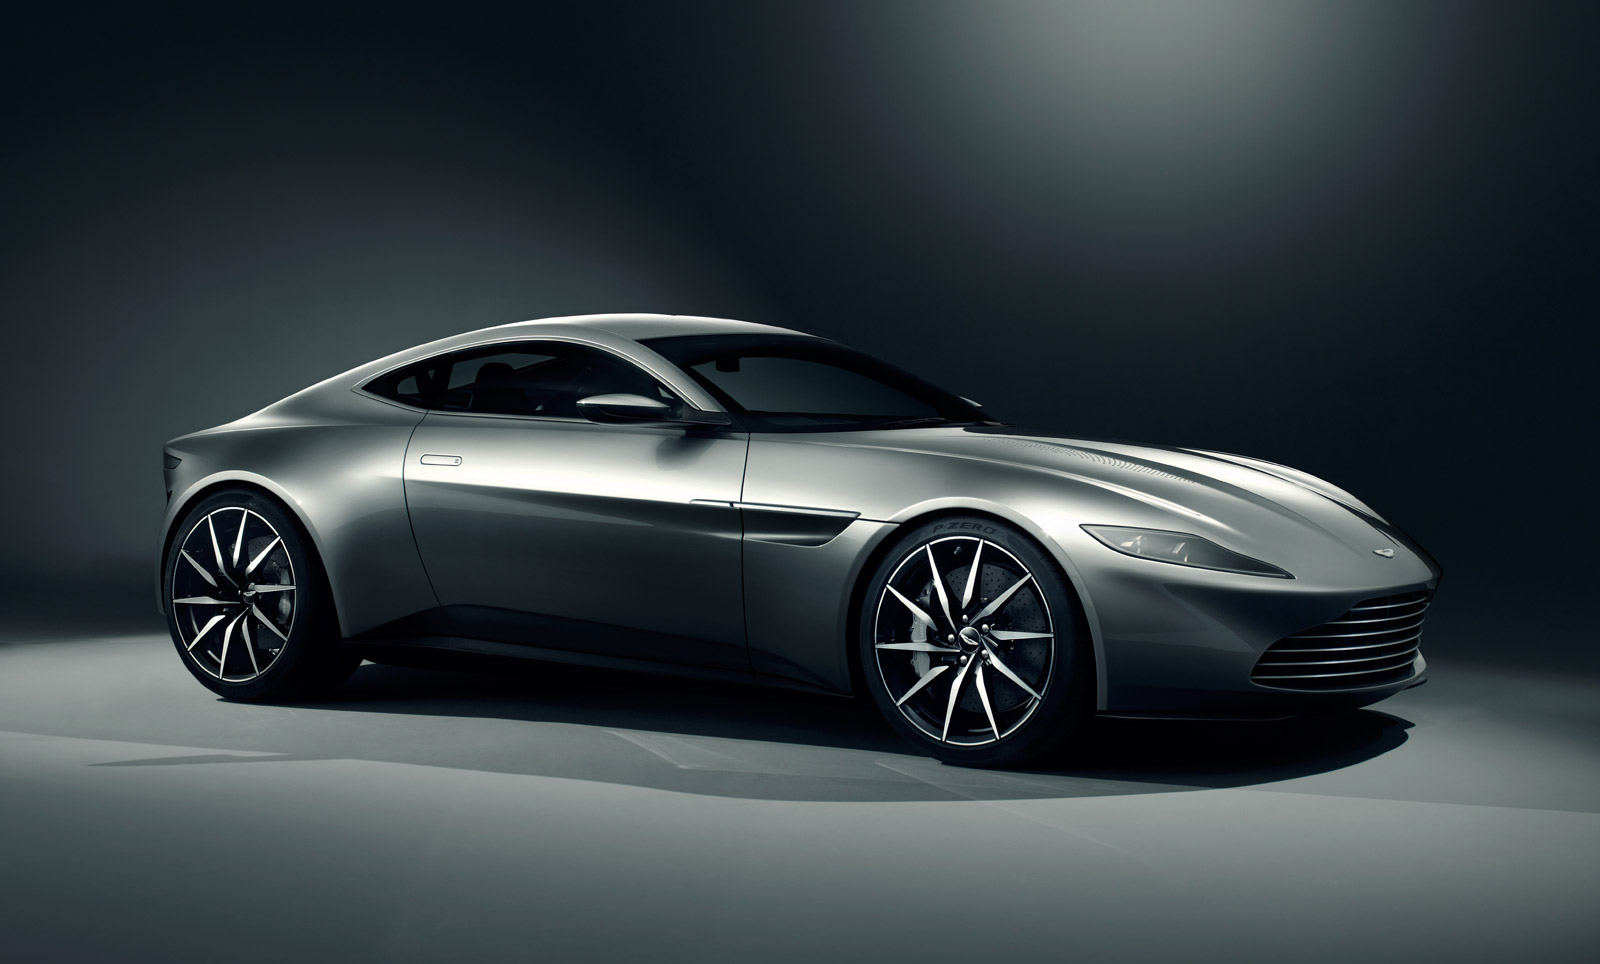 James-Bond-007-Spectre-Car-Wallpaper-Aston-Martin-DB10